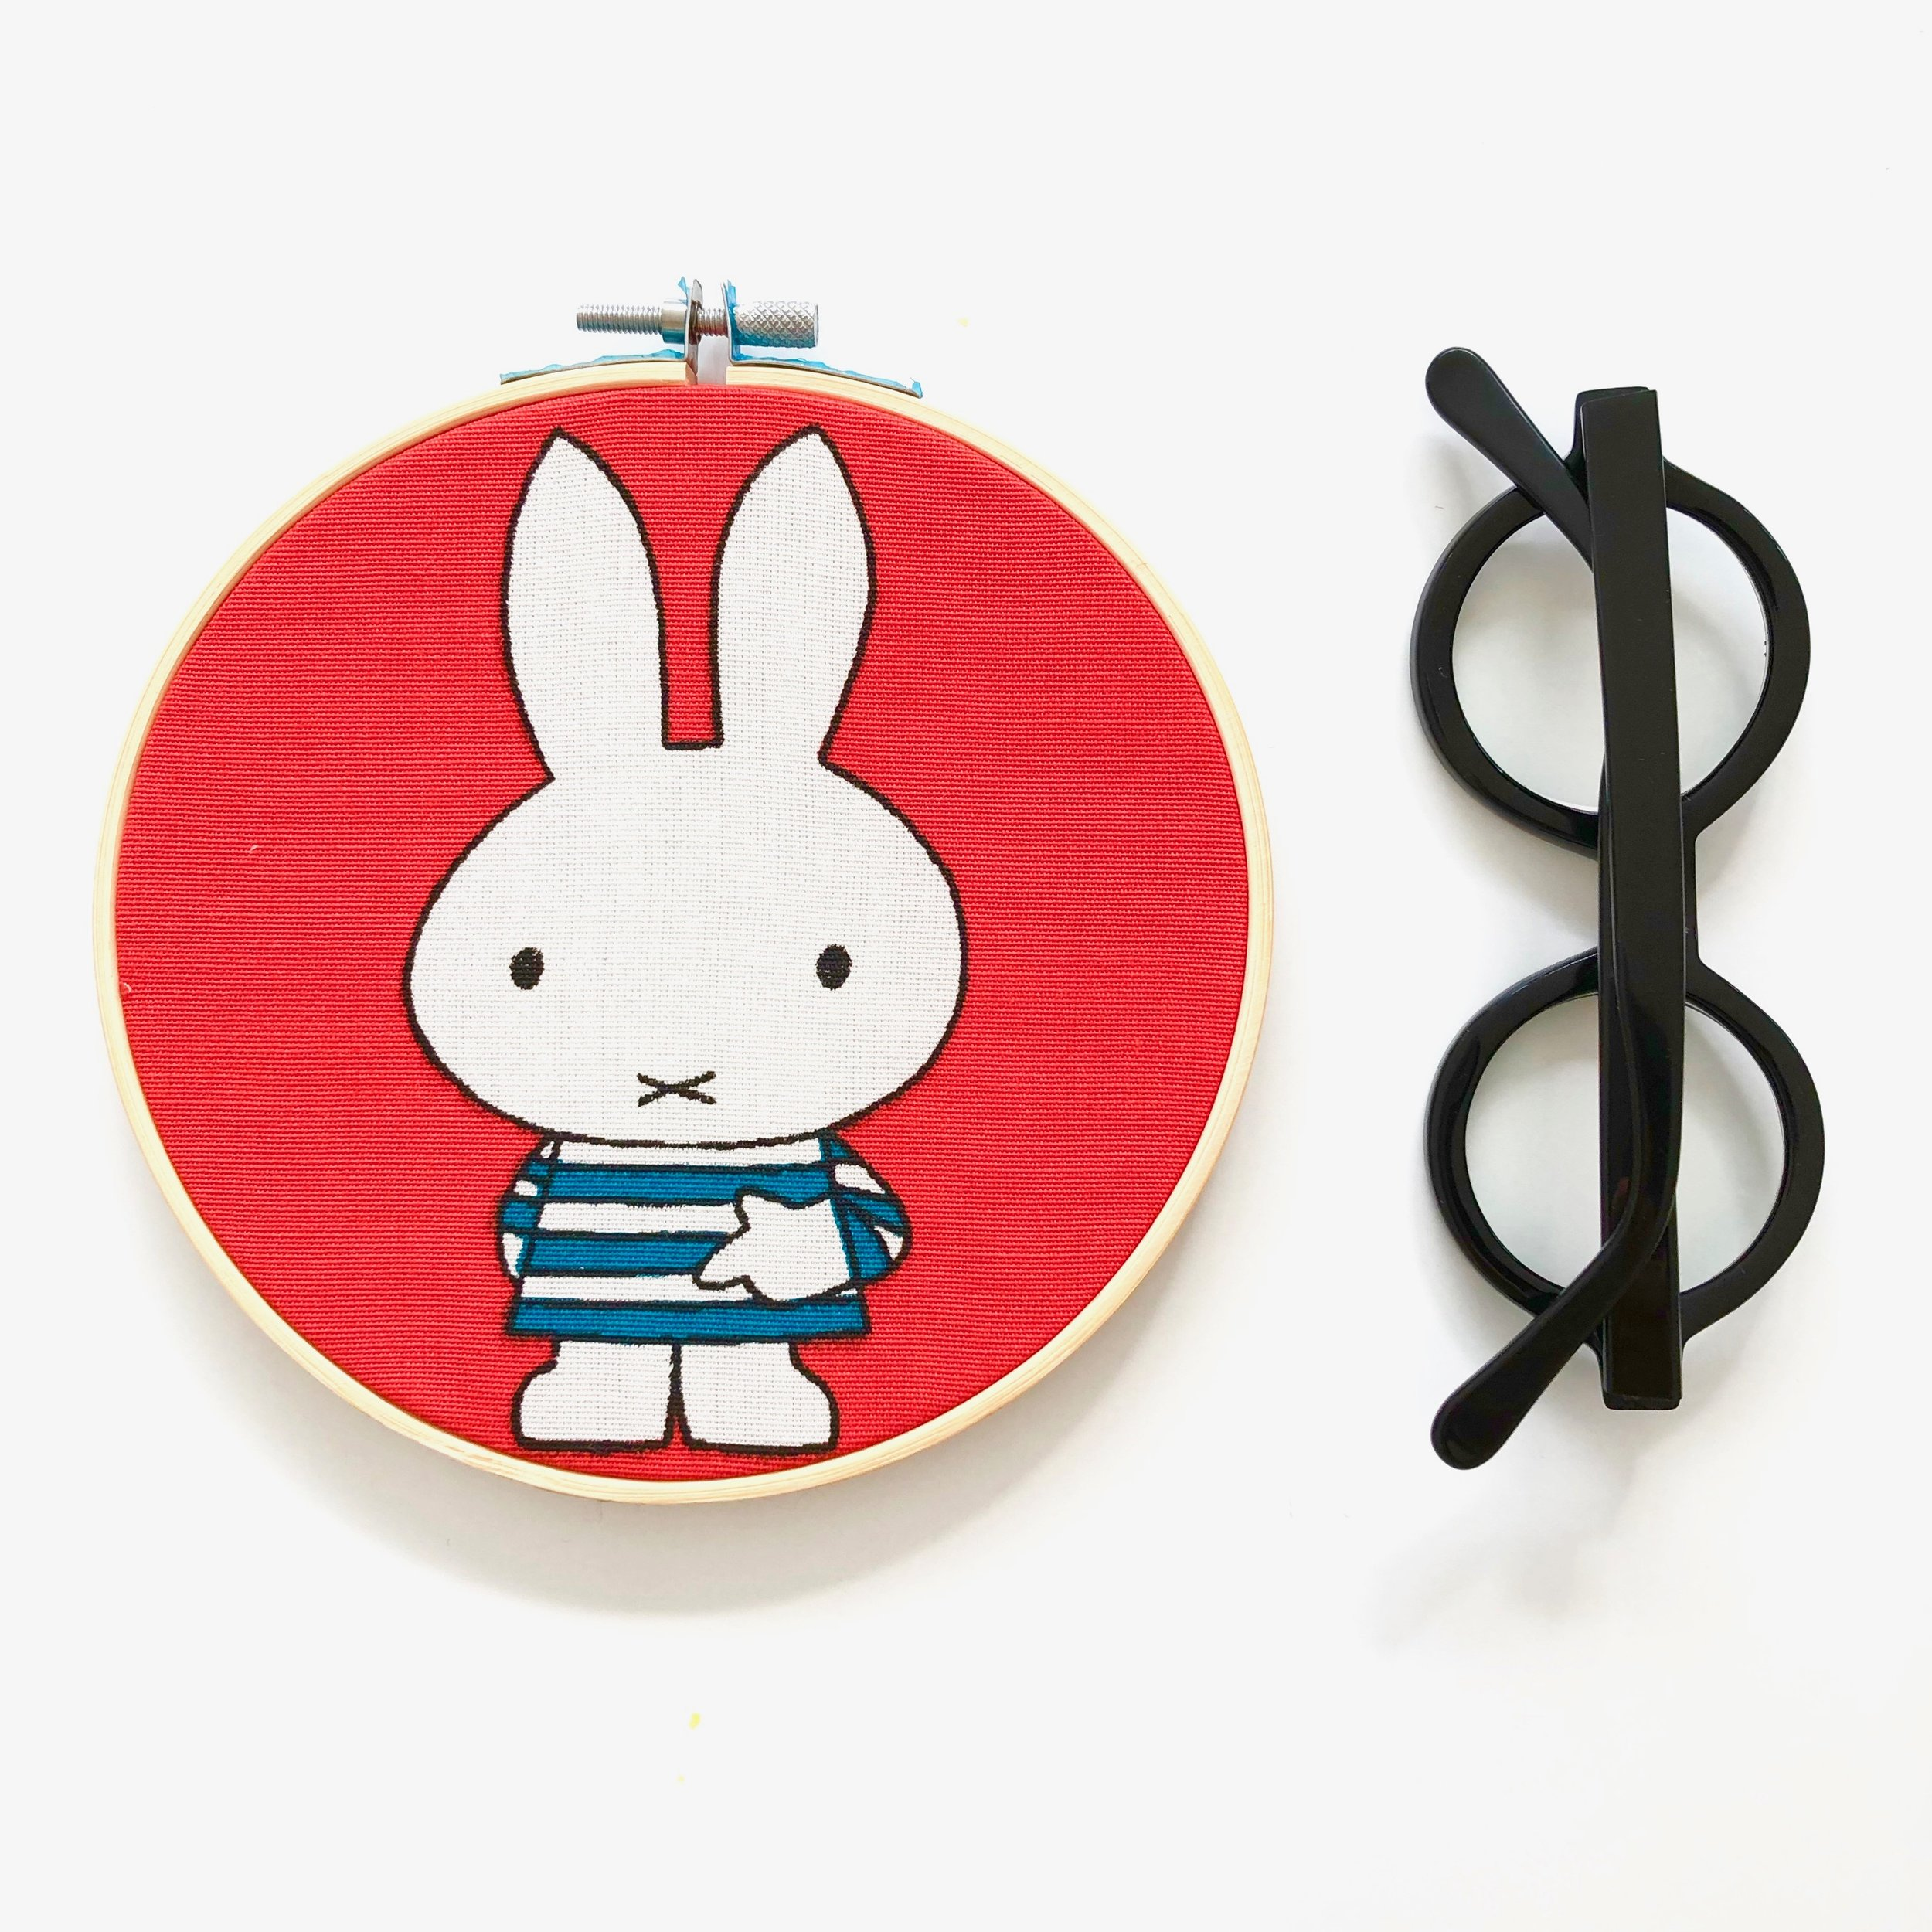 Miffy hoop art .jpeg